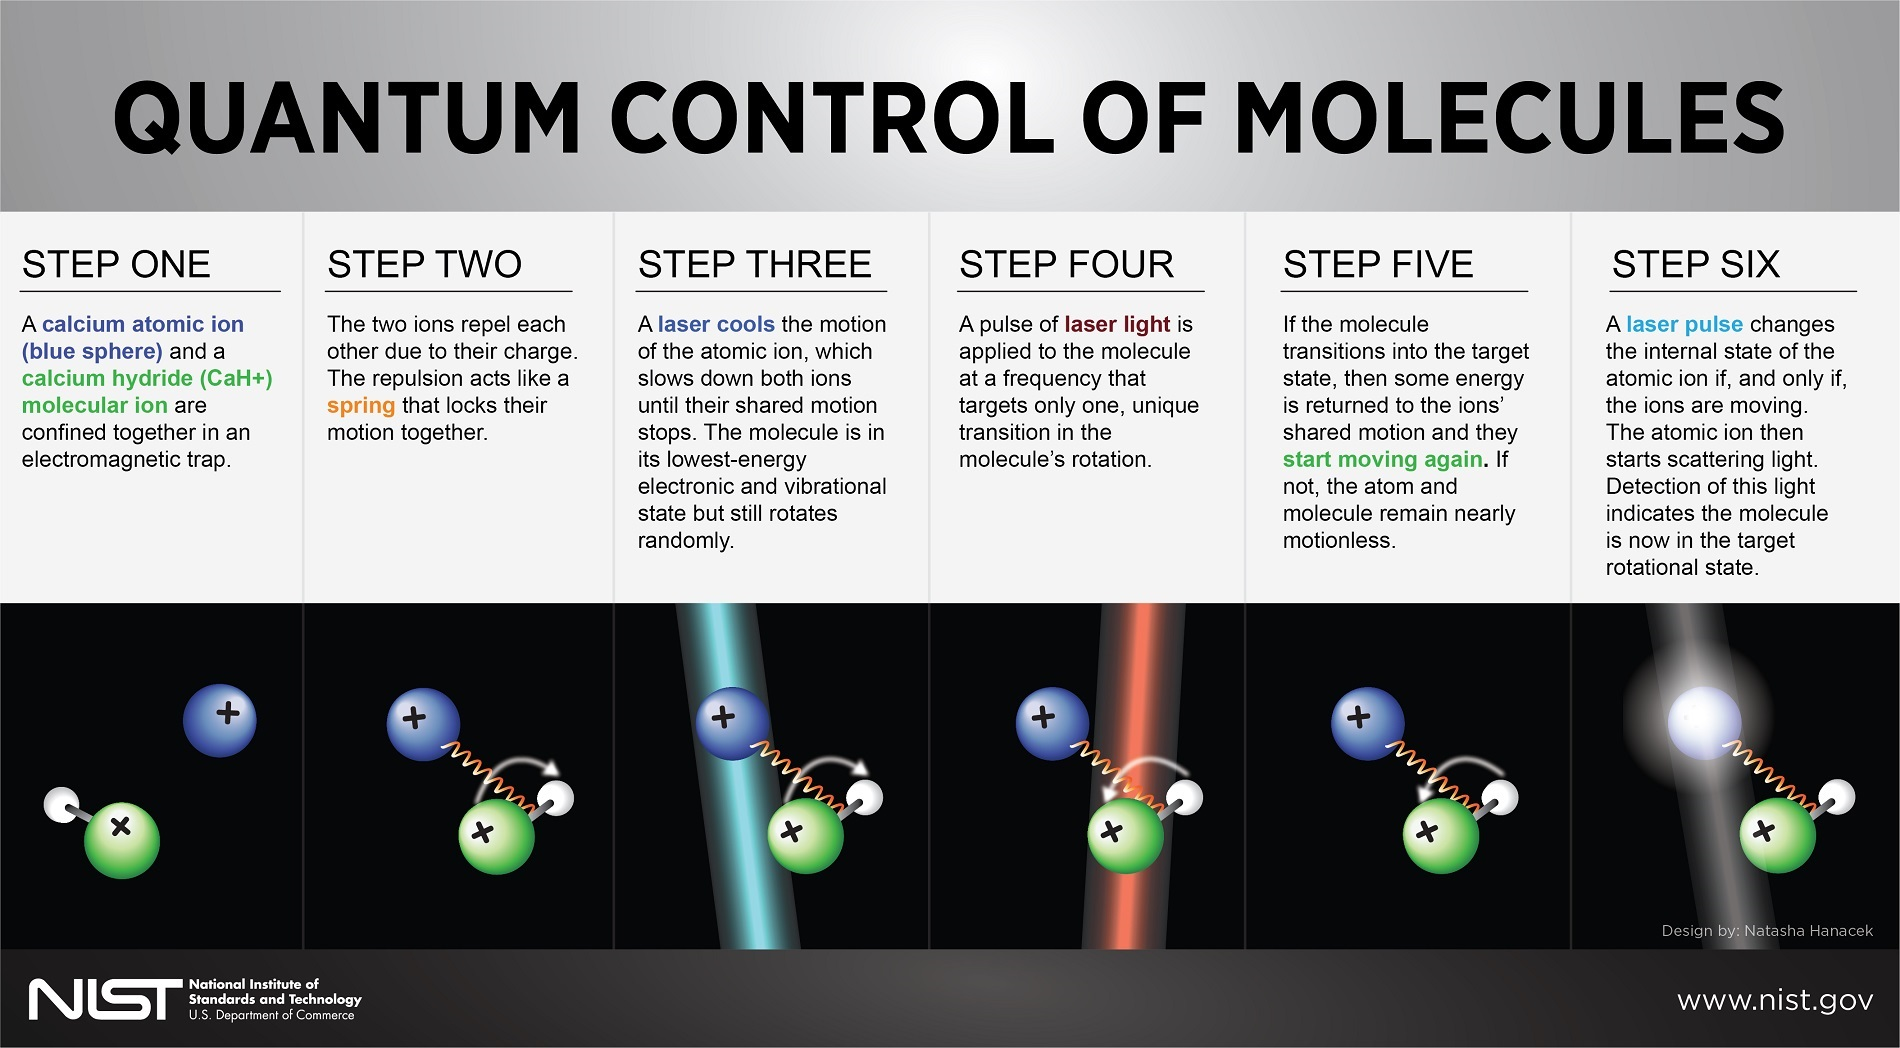 Quantum Control of Molecules